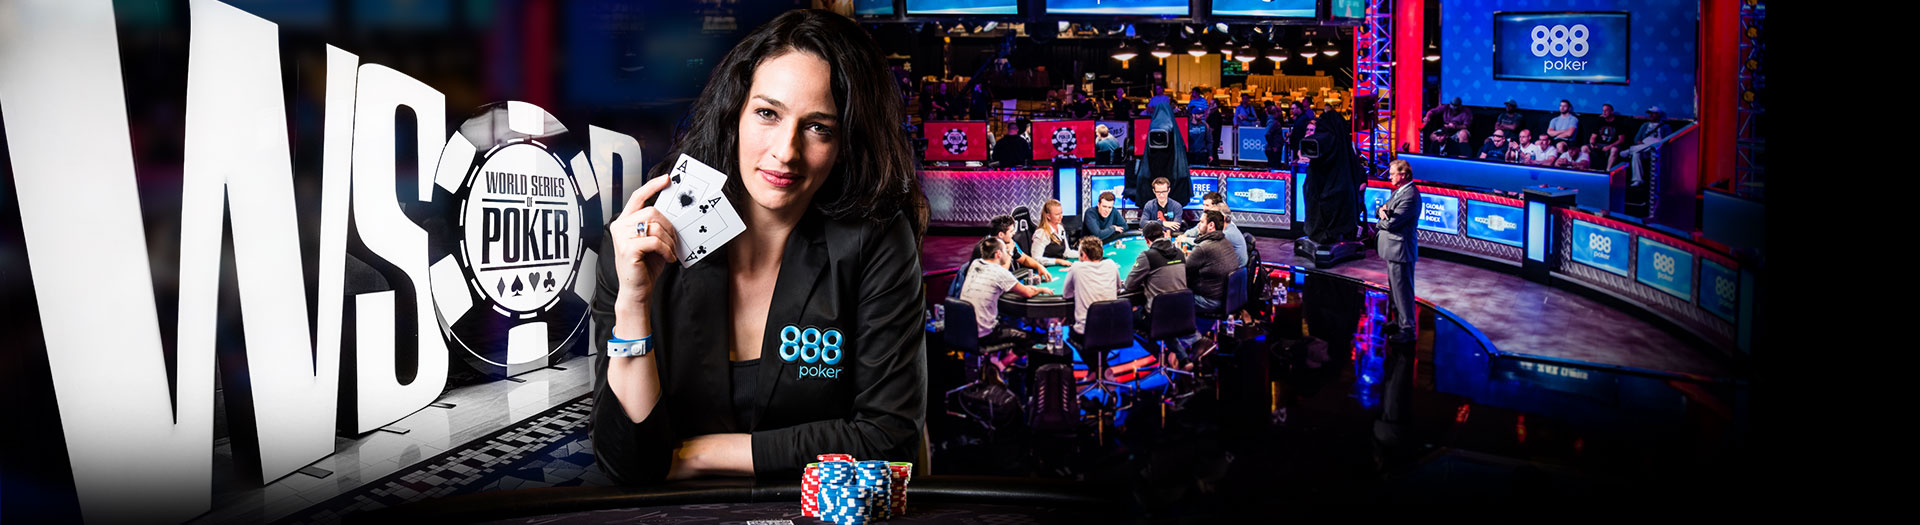 World poker tournament las vegas 2018